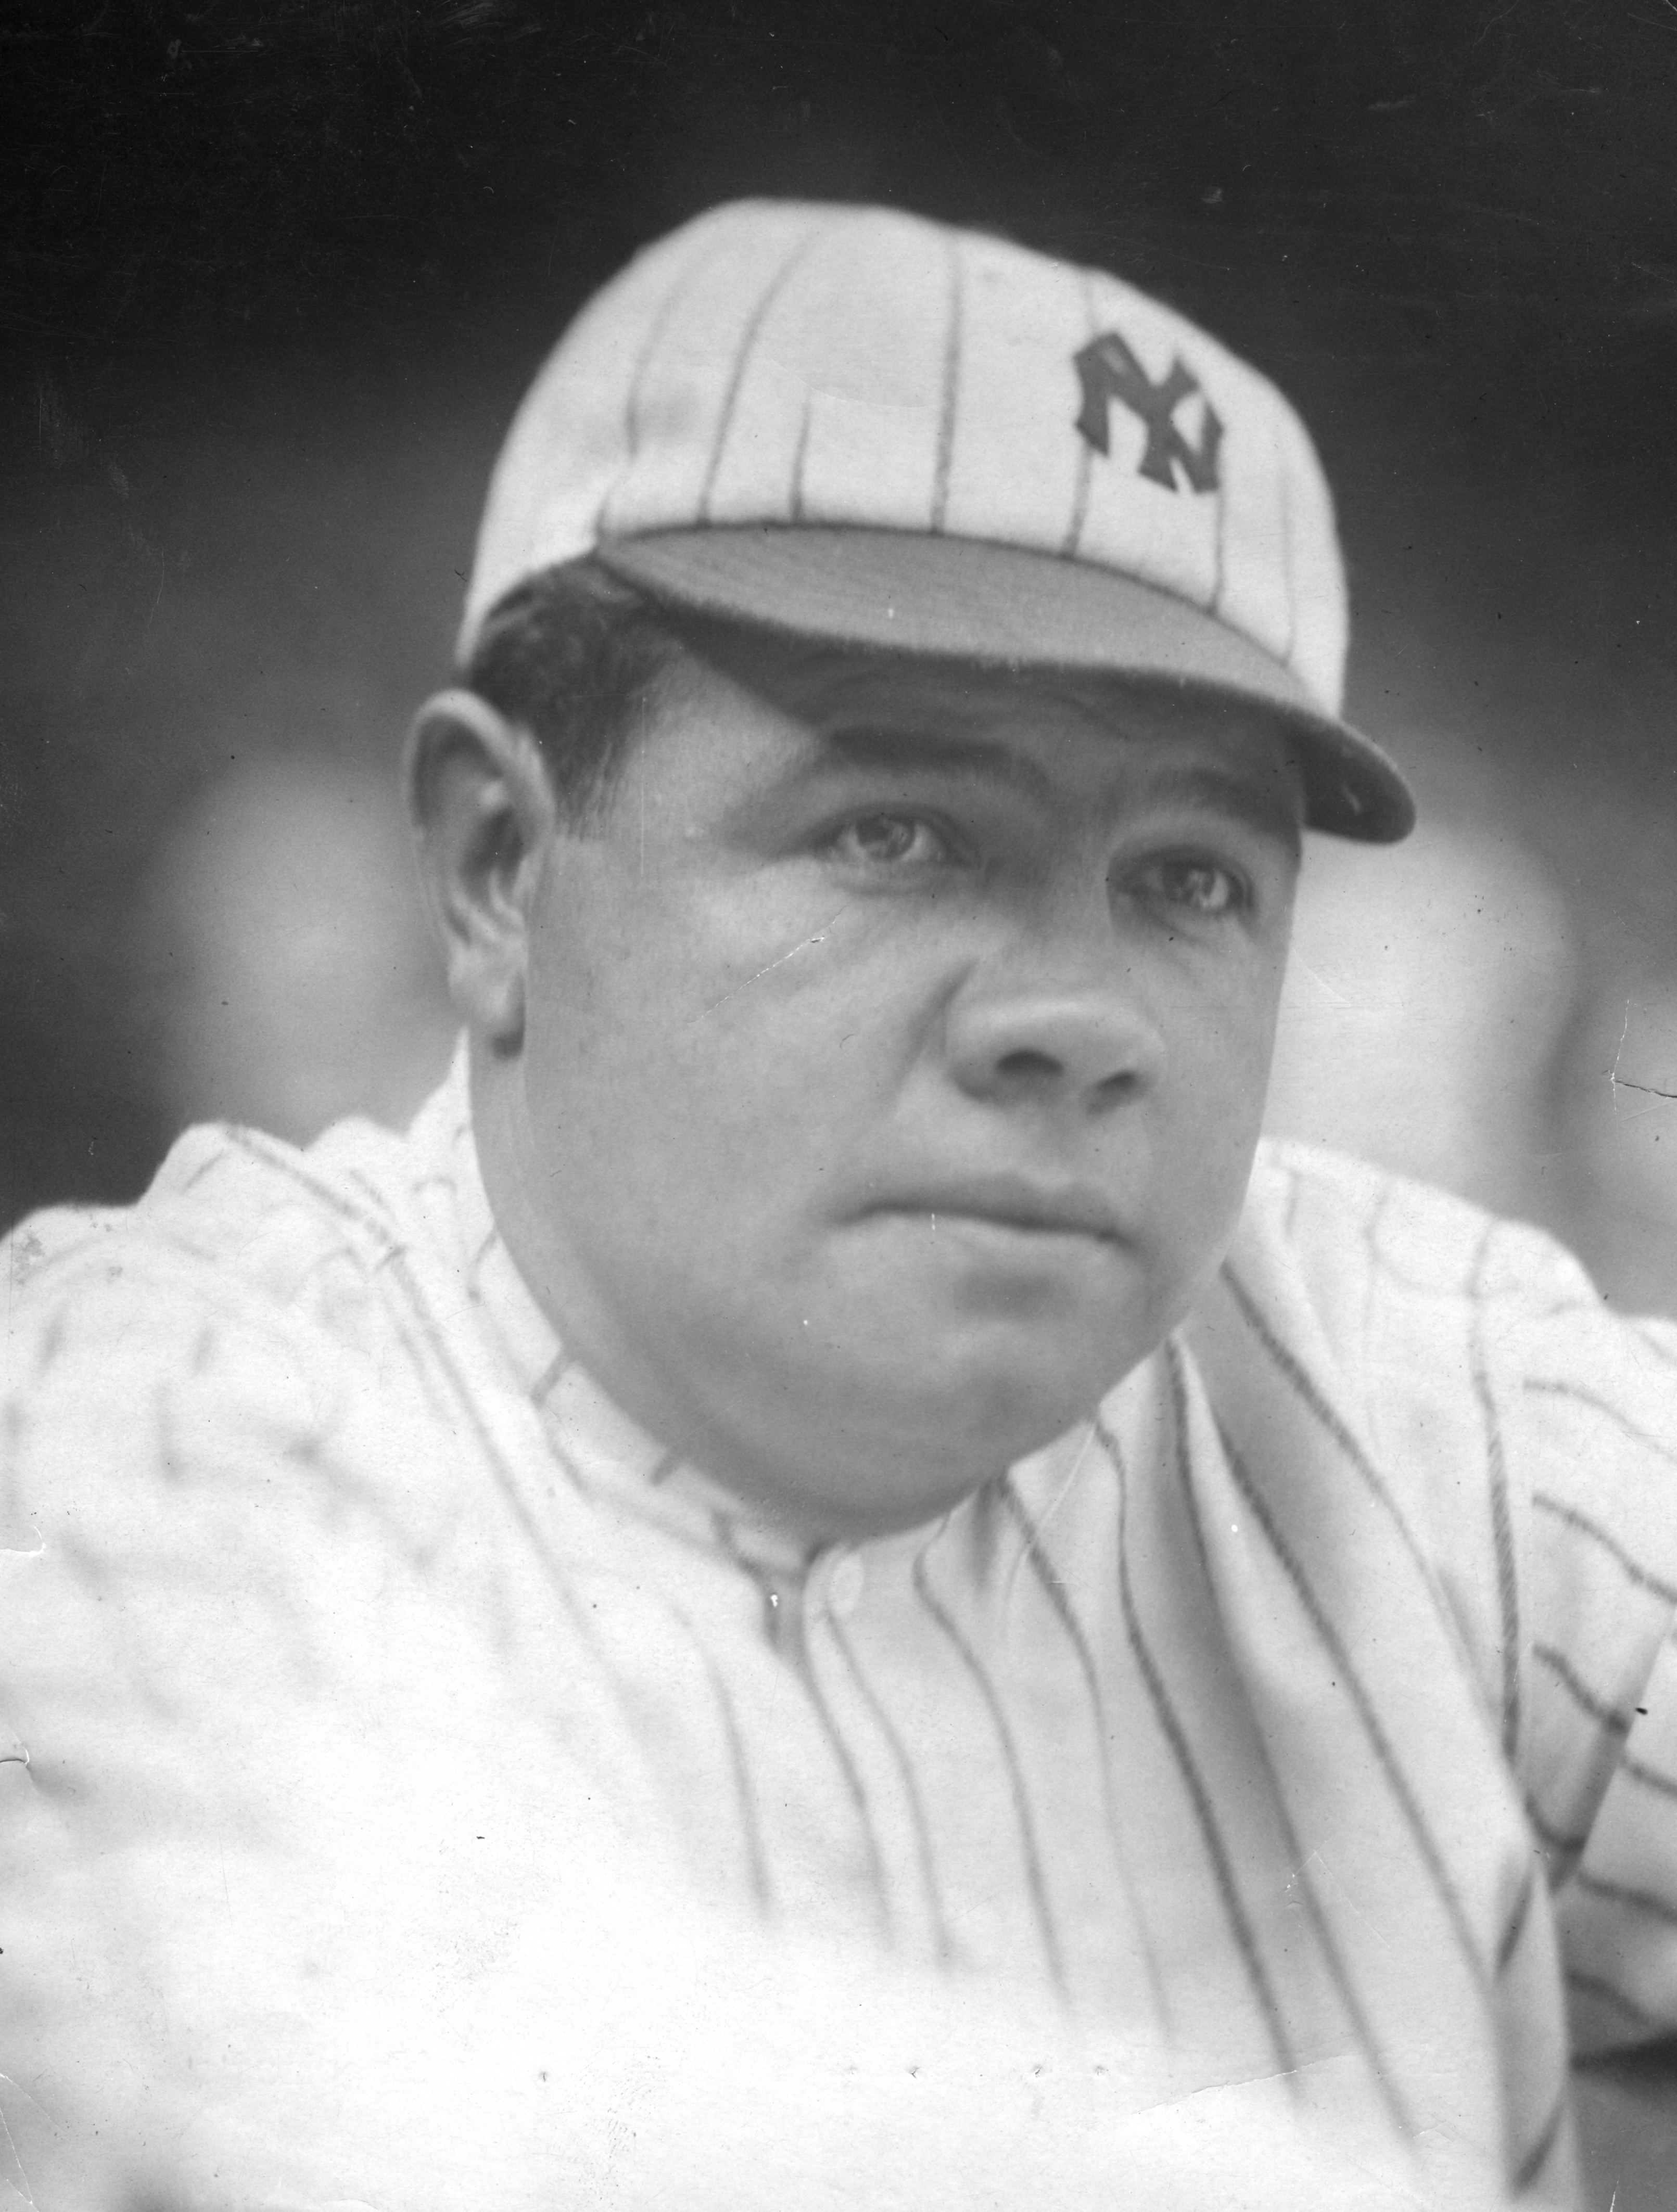 May 1, 1920: Babe Ruth's first Yankee home run is a 'colossal clout' against Red Sox